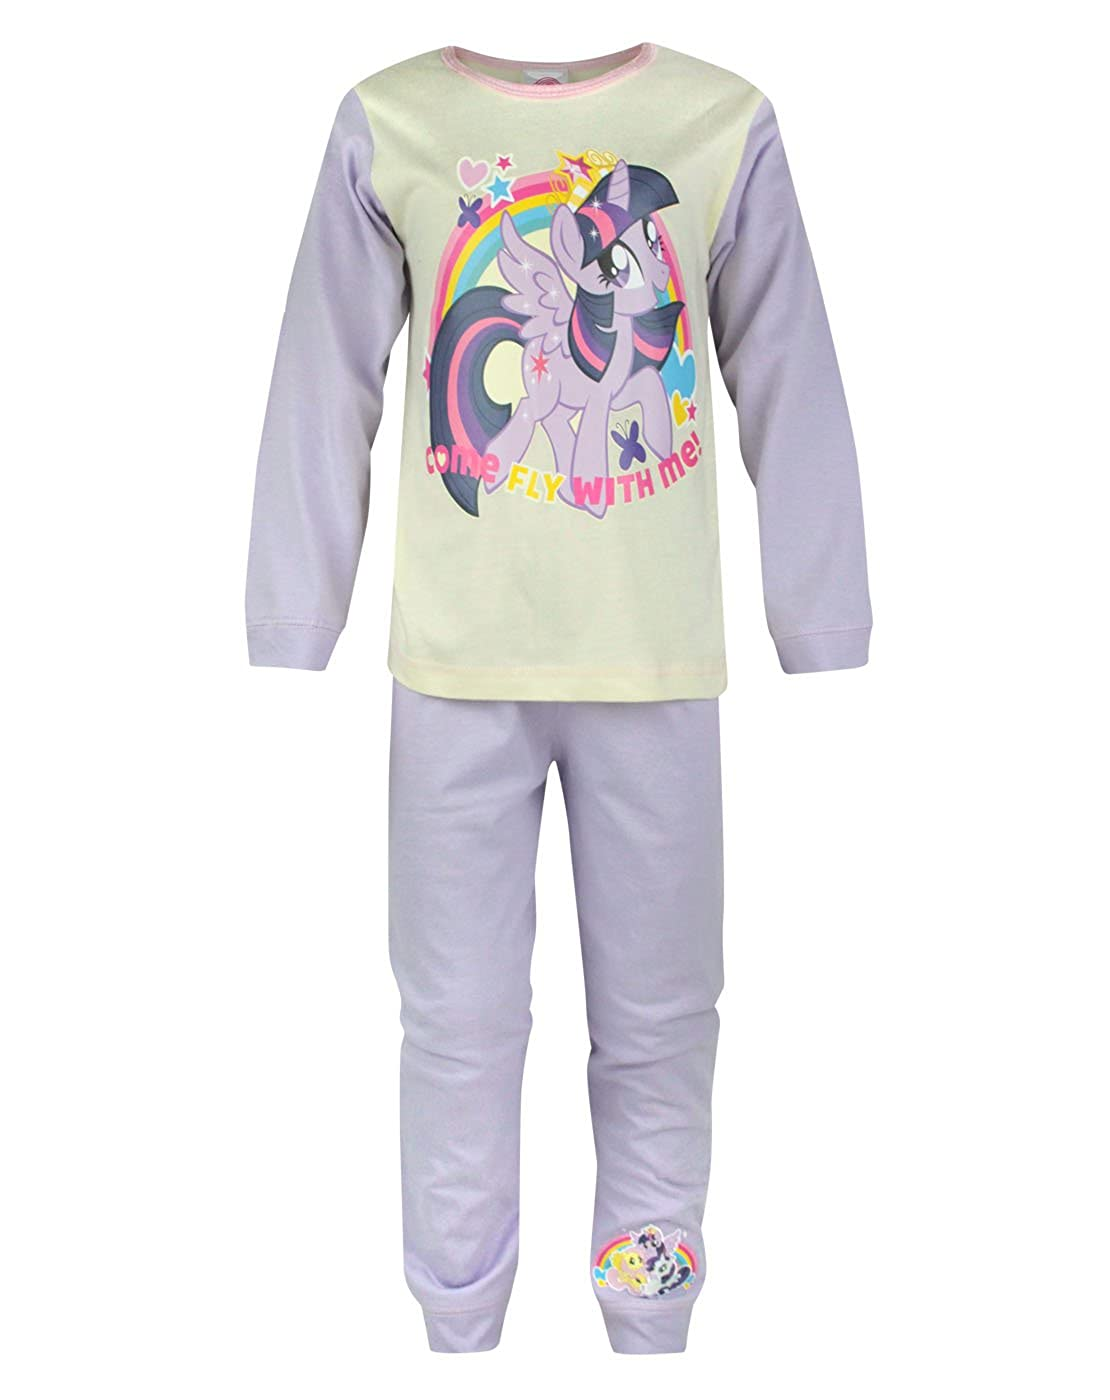 Official My Little Pony Come Fly With Me Girl's Pyjamas